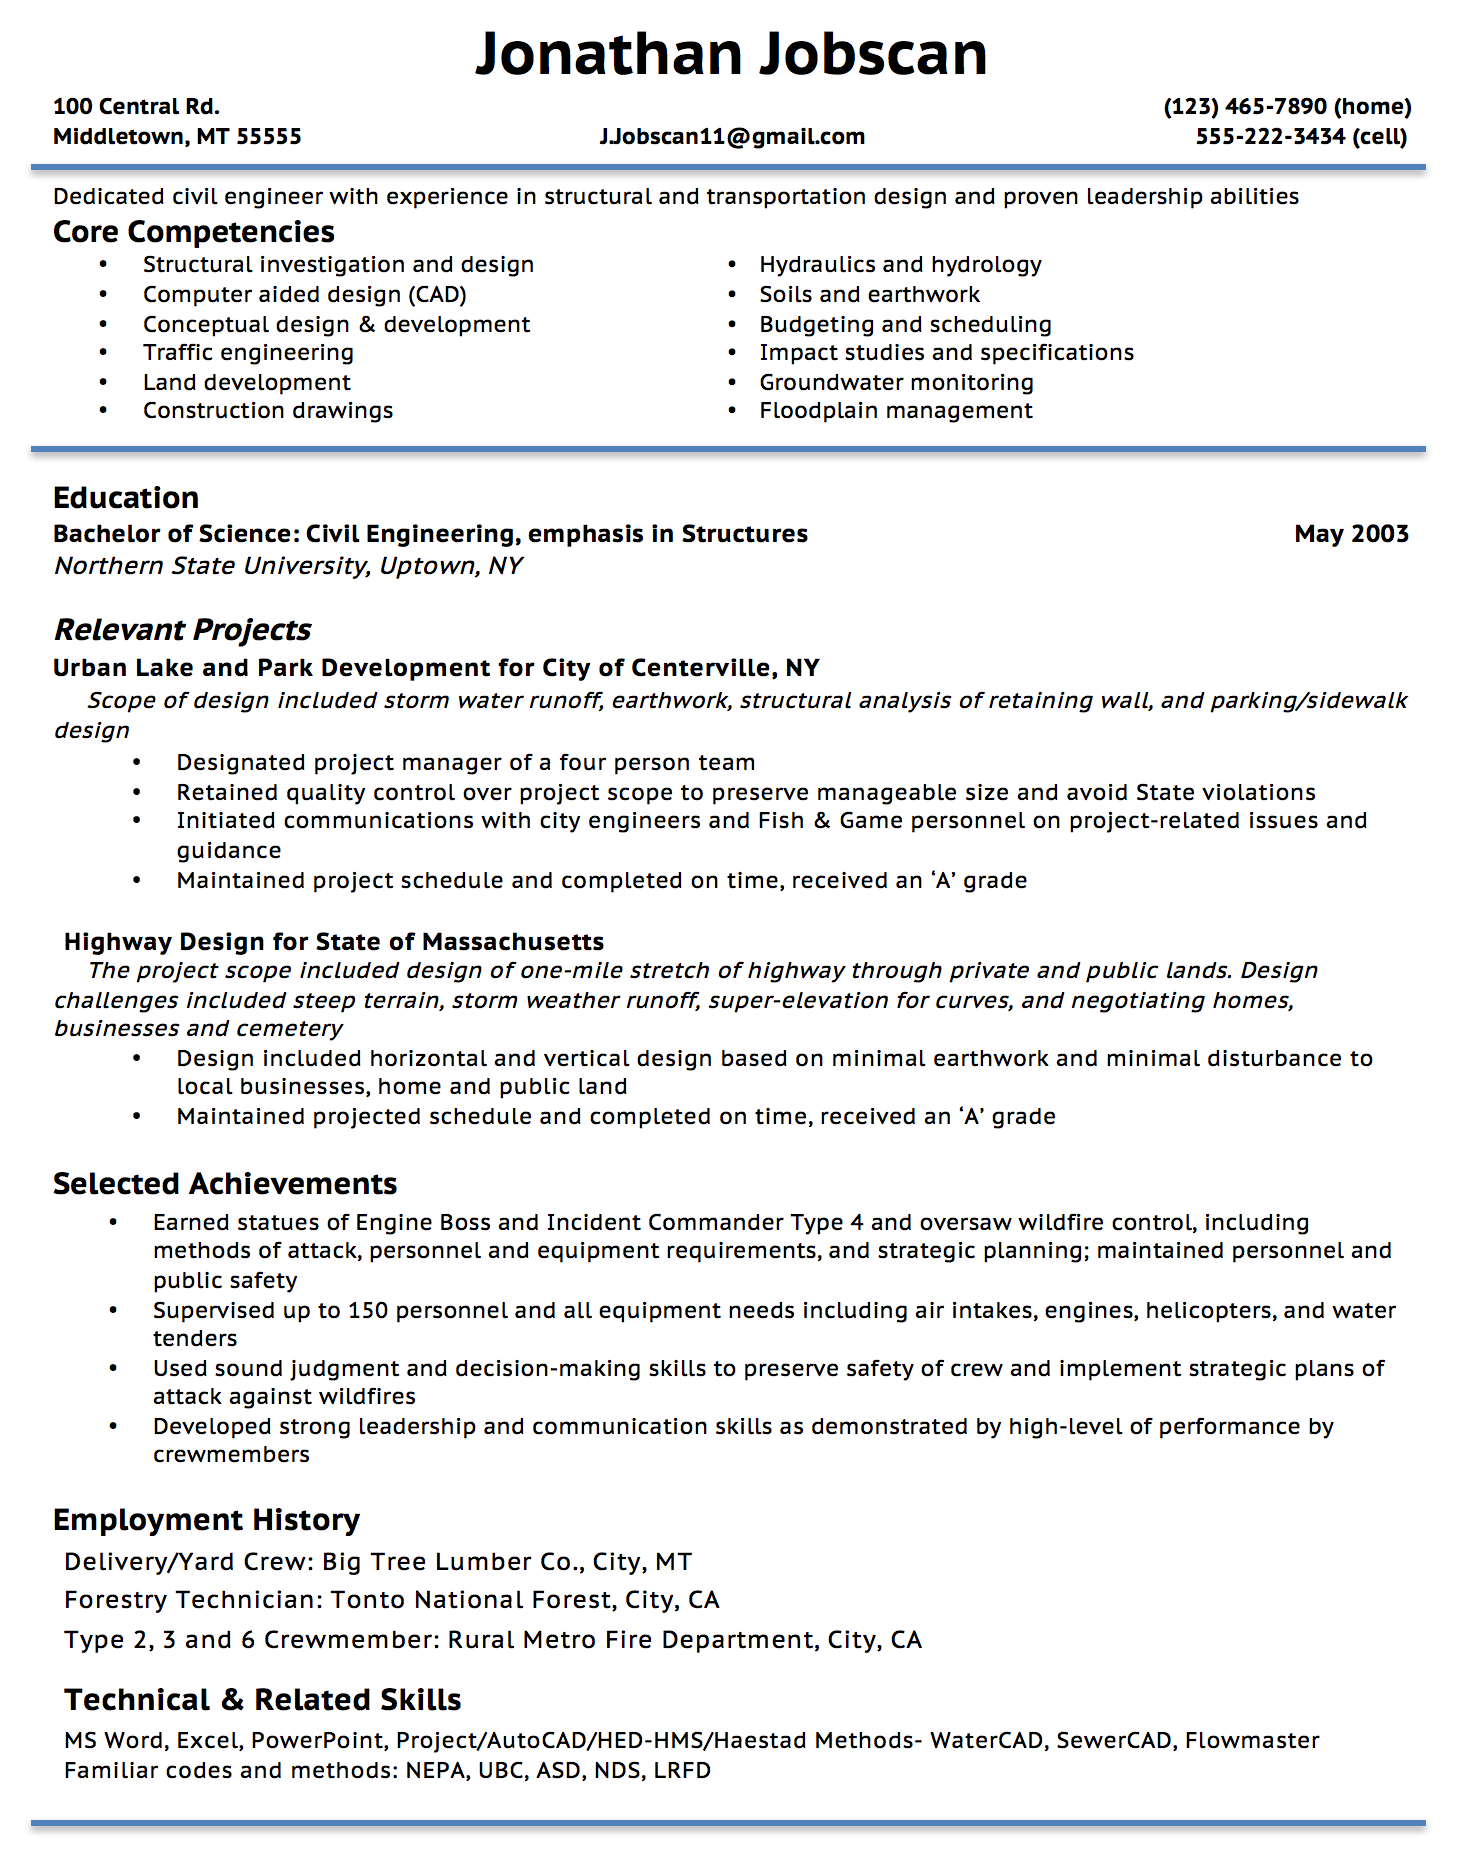 Opposenewapstandardsus  Inspiring Resume Writing Guide  Jobscan With Licious Example Of A Functional Resume Format With Comely Skills To Include On A Resume Also Resume French In Addition Creative Resume Designs And Resume Name Examples As Well As Bad Resume Example Additionally Good Resume Layout From Jobscanco With Opposenewapstandardsus  Licious Resume Writing Guide  Jobscan With Comely Example Of A Functional Resume Format And Inspiring Skills To Include On A Resume Also Resume French In Addition Creative Resume Designs From Jobscanco